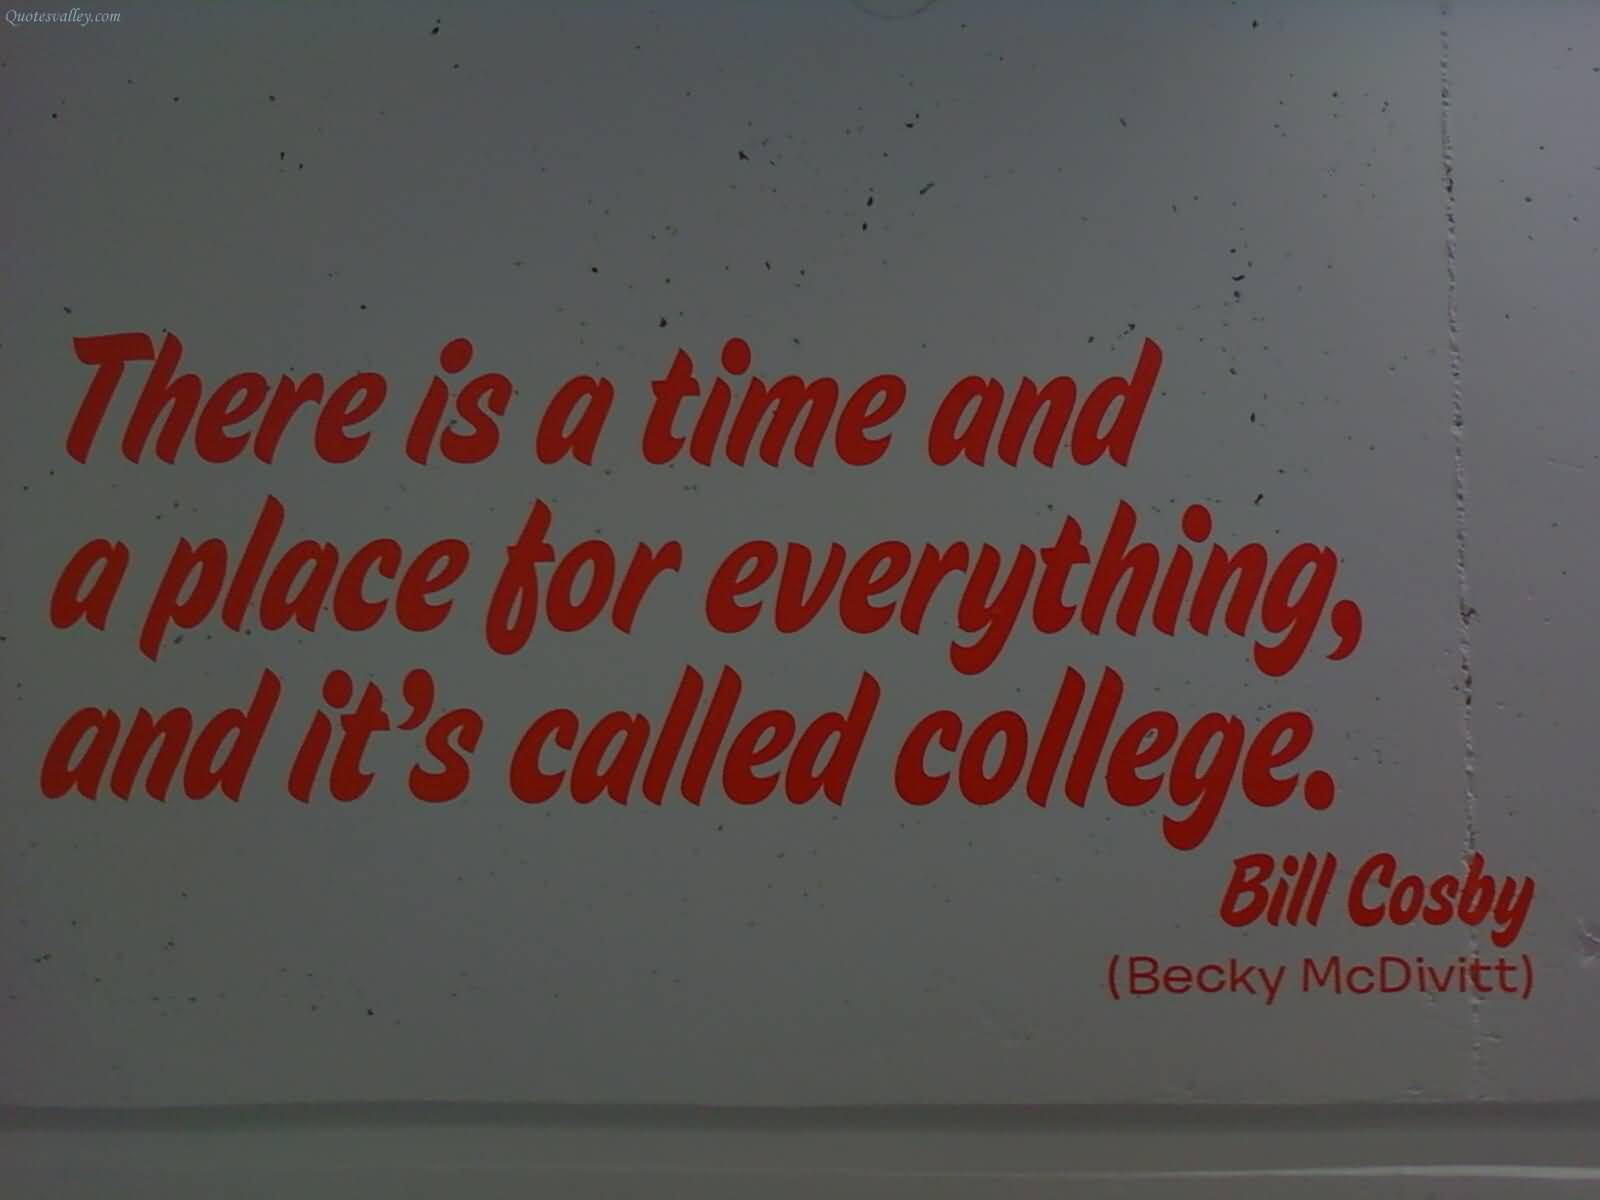 There Is A Time And A Place For Everything And it's Called College